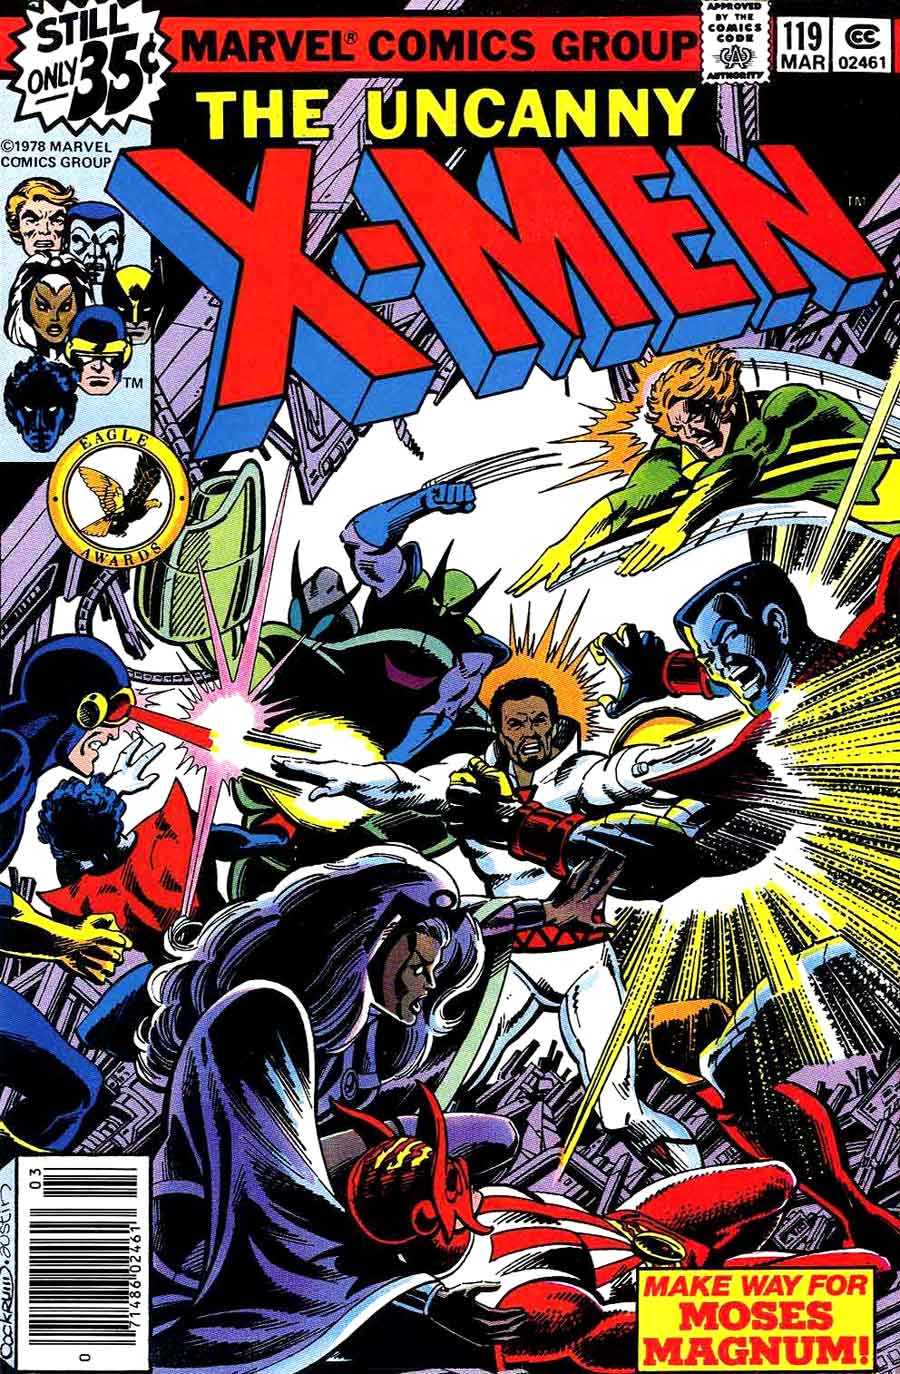 X-men v1 #119 marvel comic book cover art by John Byrne